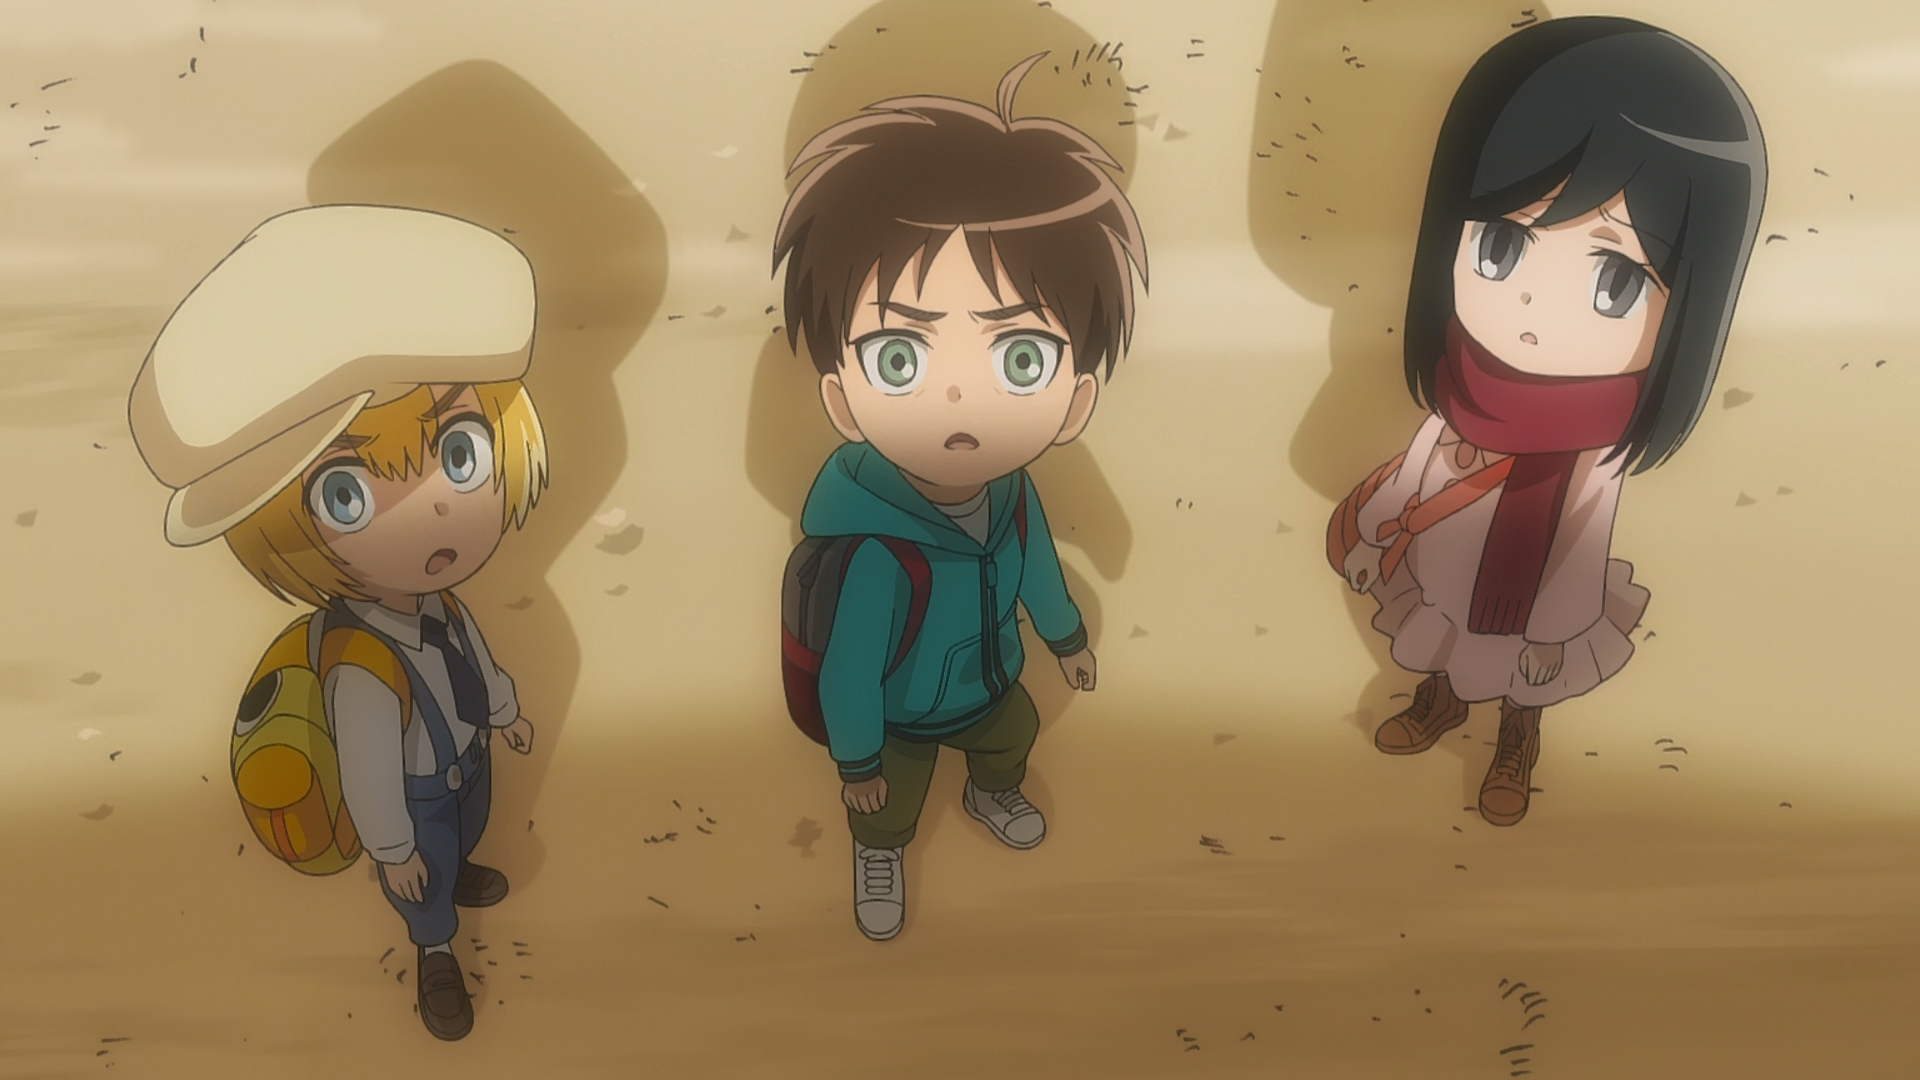 File:Armin, Eren and Mikasa see the Colossal Titan.jpg